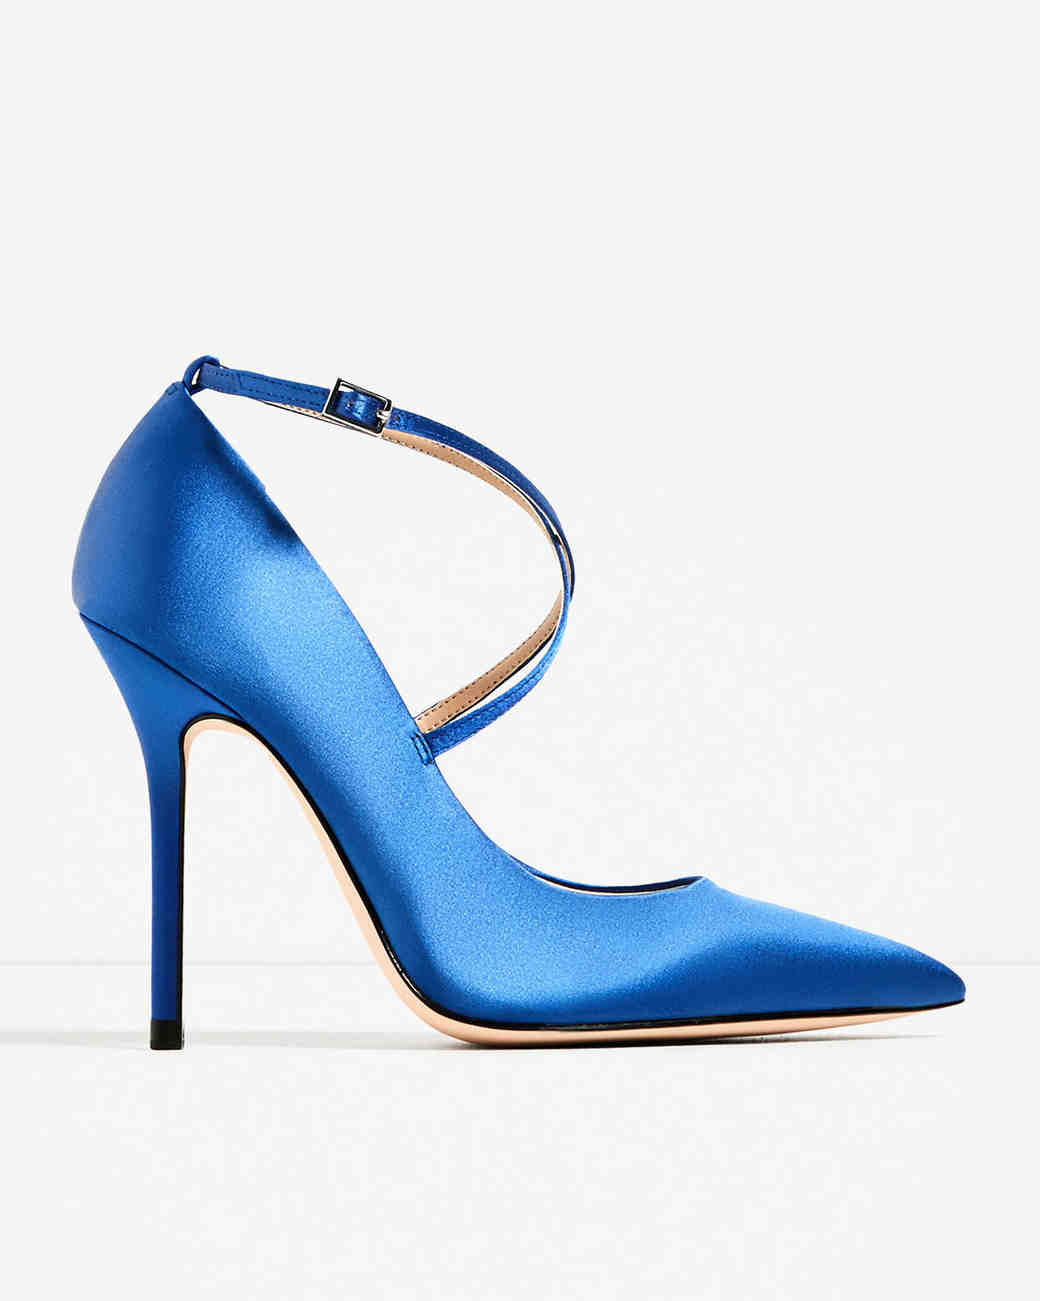 Closed Toe Evening Shoes To Rock For Your Winter Wedding | Martha Stewart  Weddings